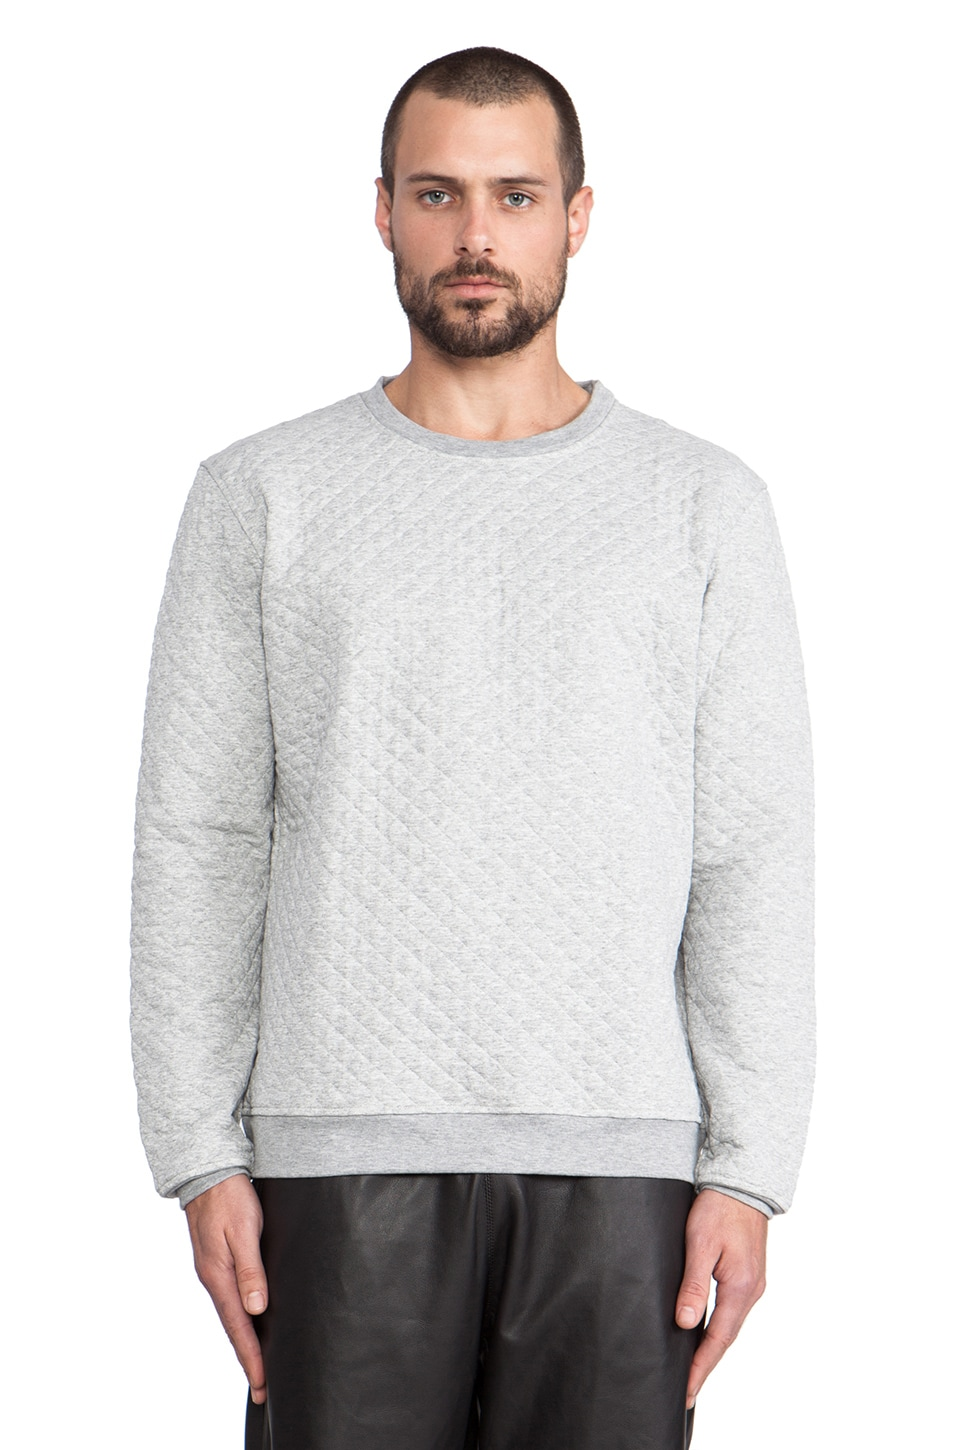 lot78 Quilted Sweatshirt in Grey Melange